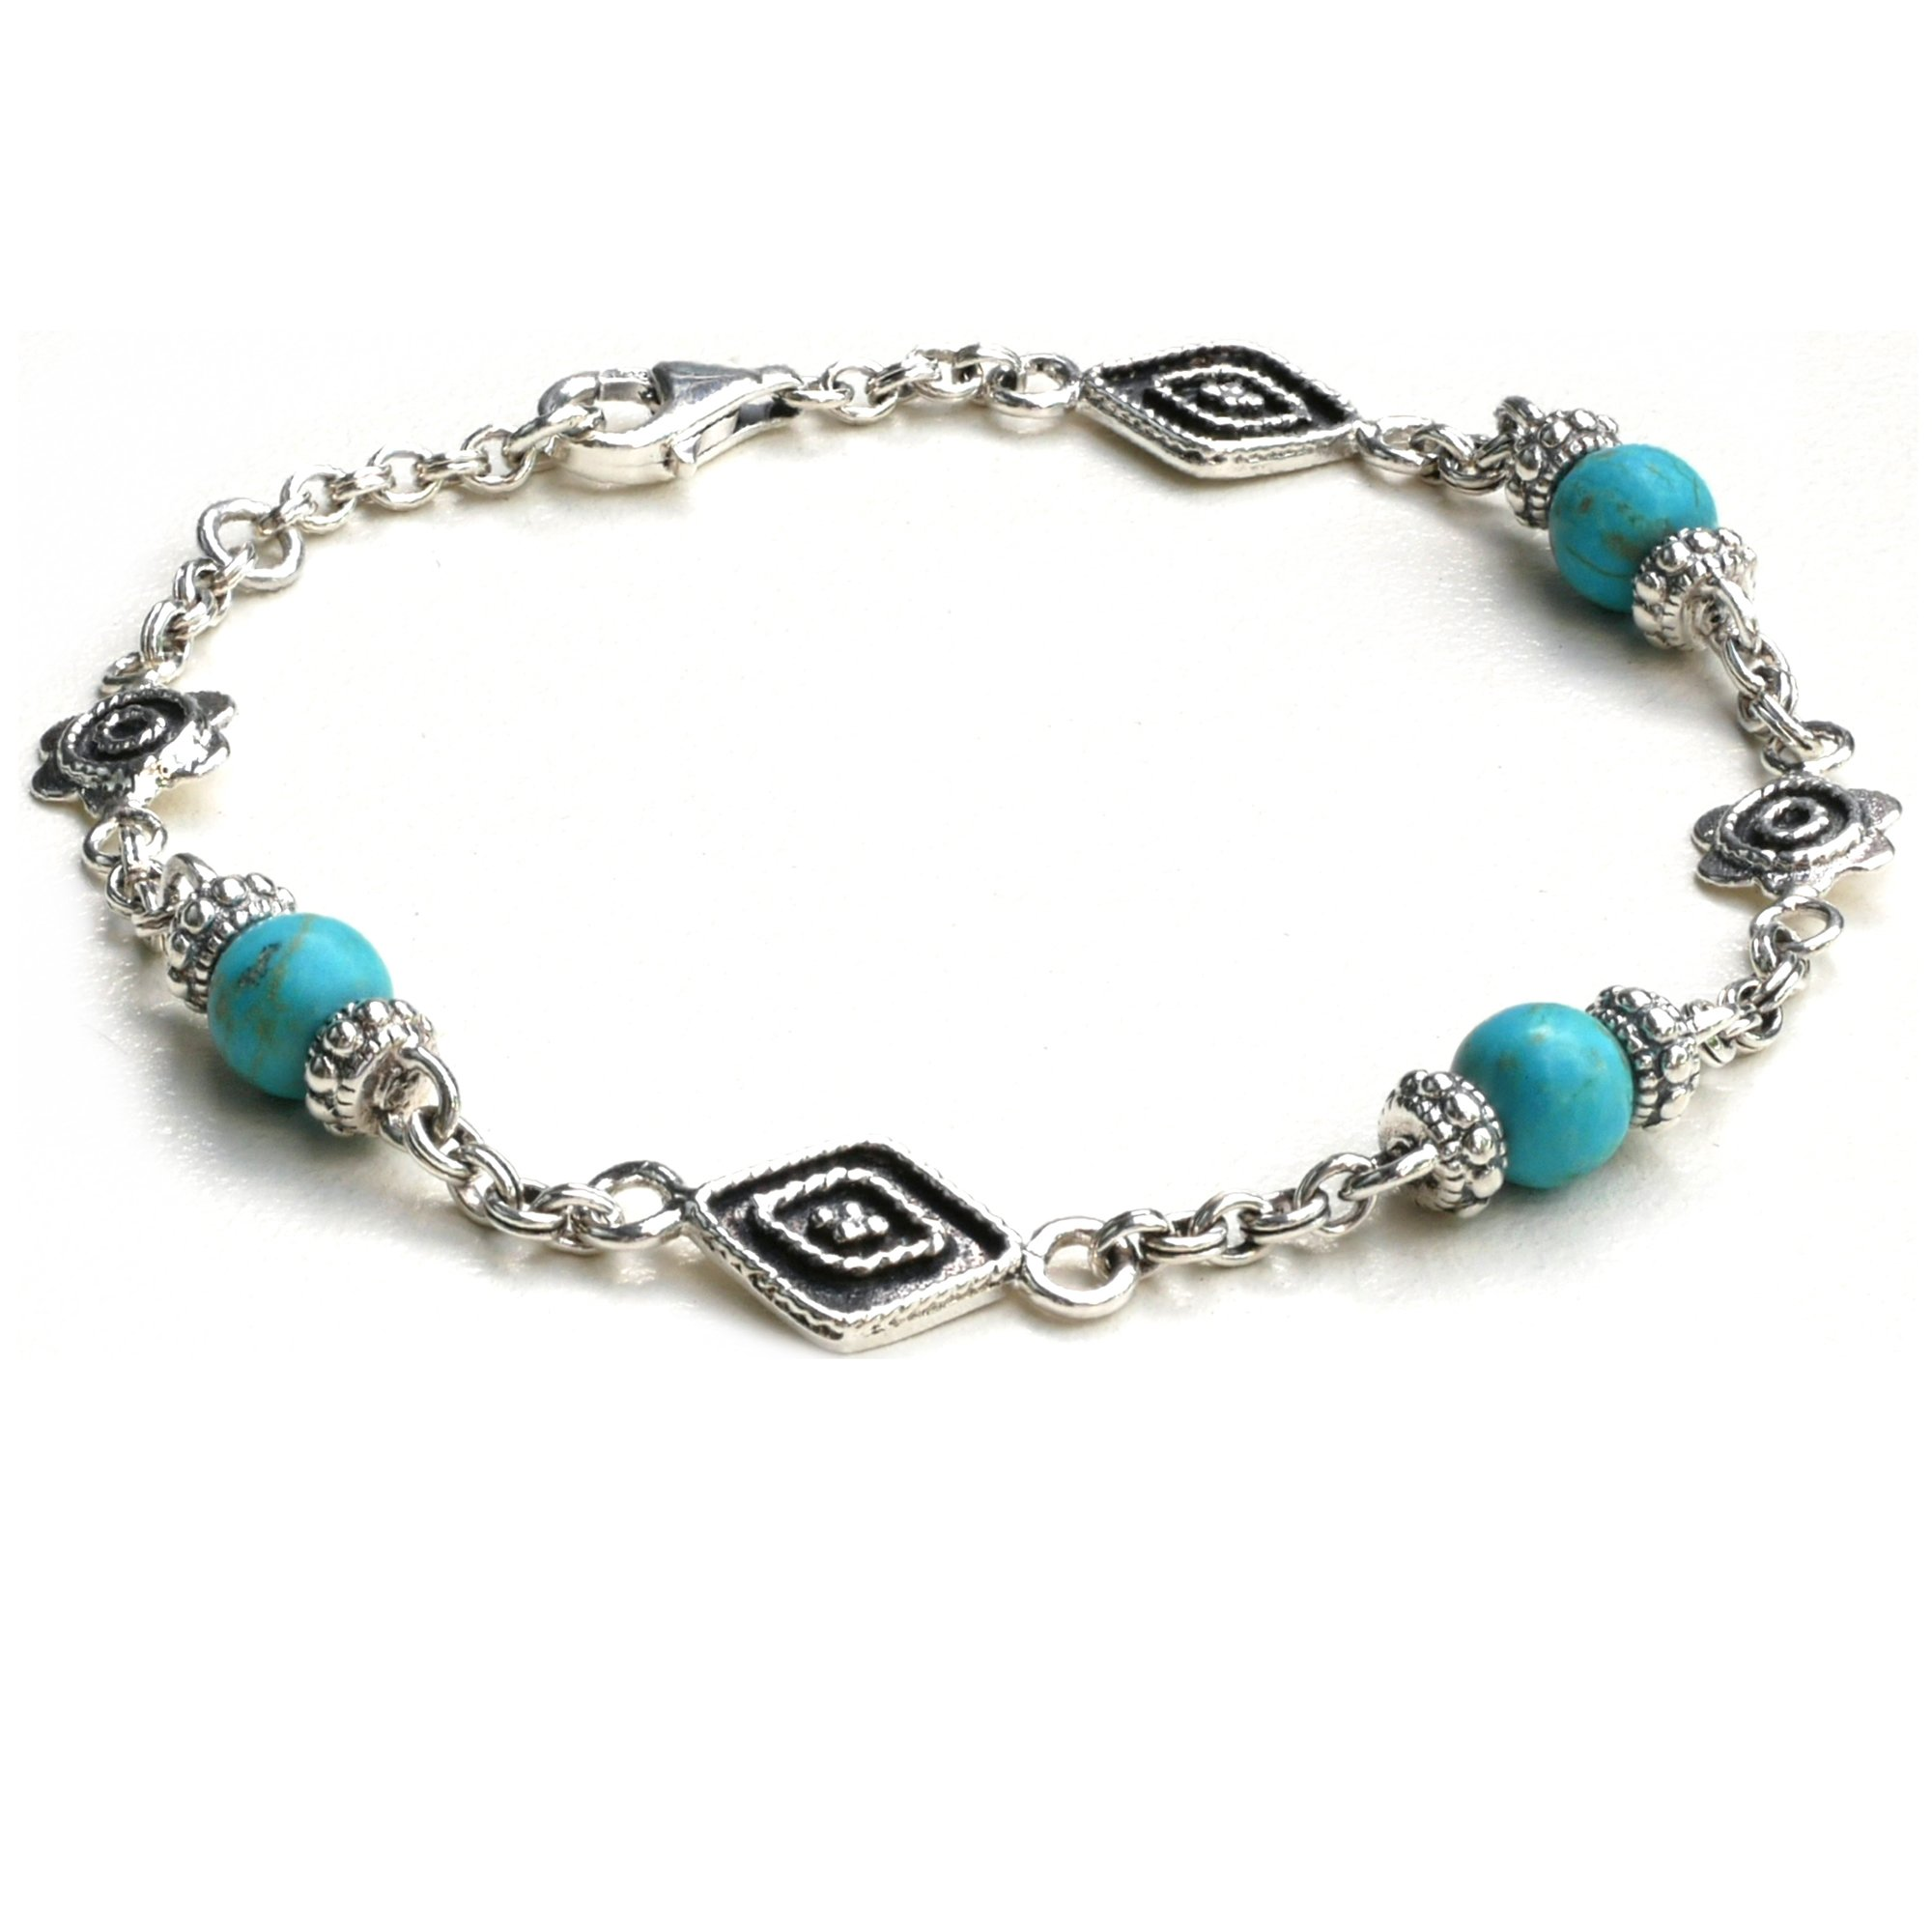 Kham Women 925 Sterling Silver Bohemian Style Link Bracelet with Genuine Natural Blue Turquoise Bead (7.5)